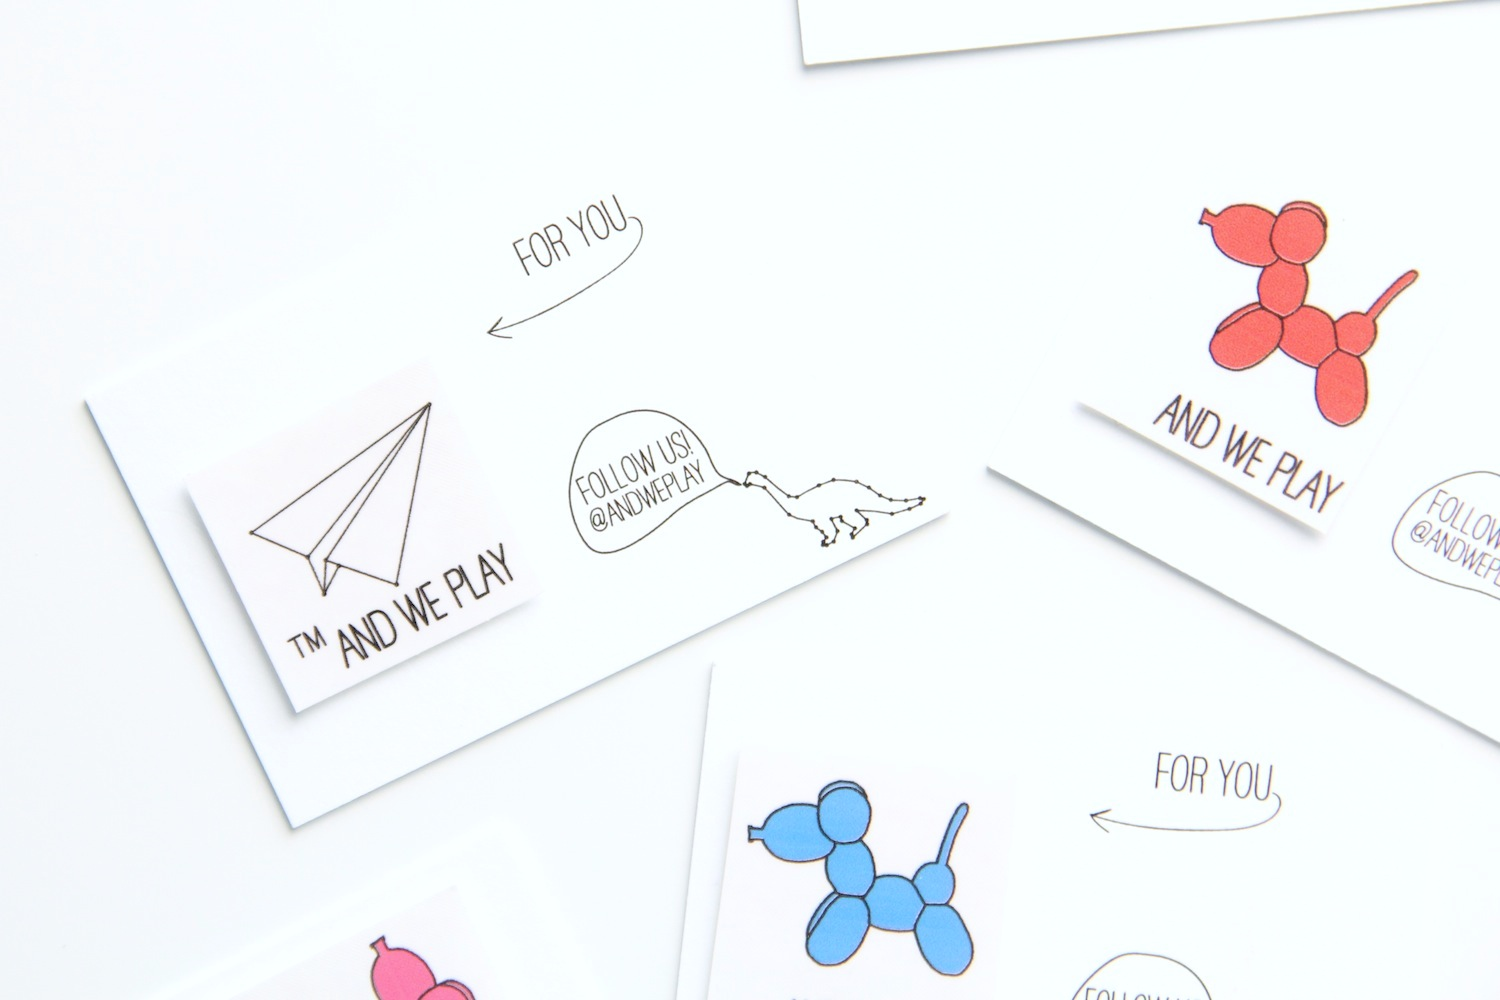 New business cards download and we play diy for kids temporary tattoo business cards colourmoves